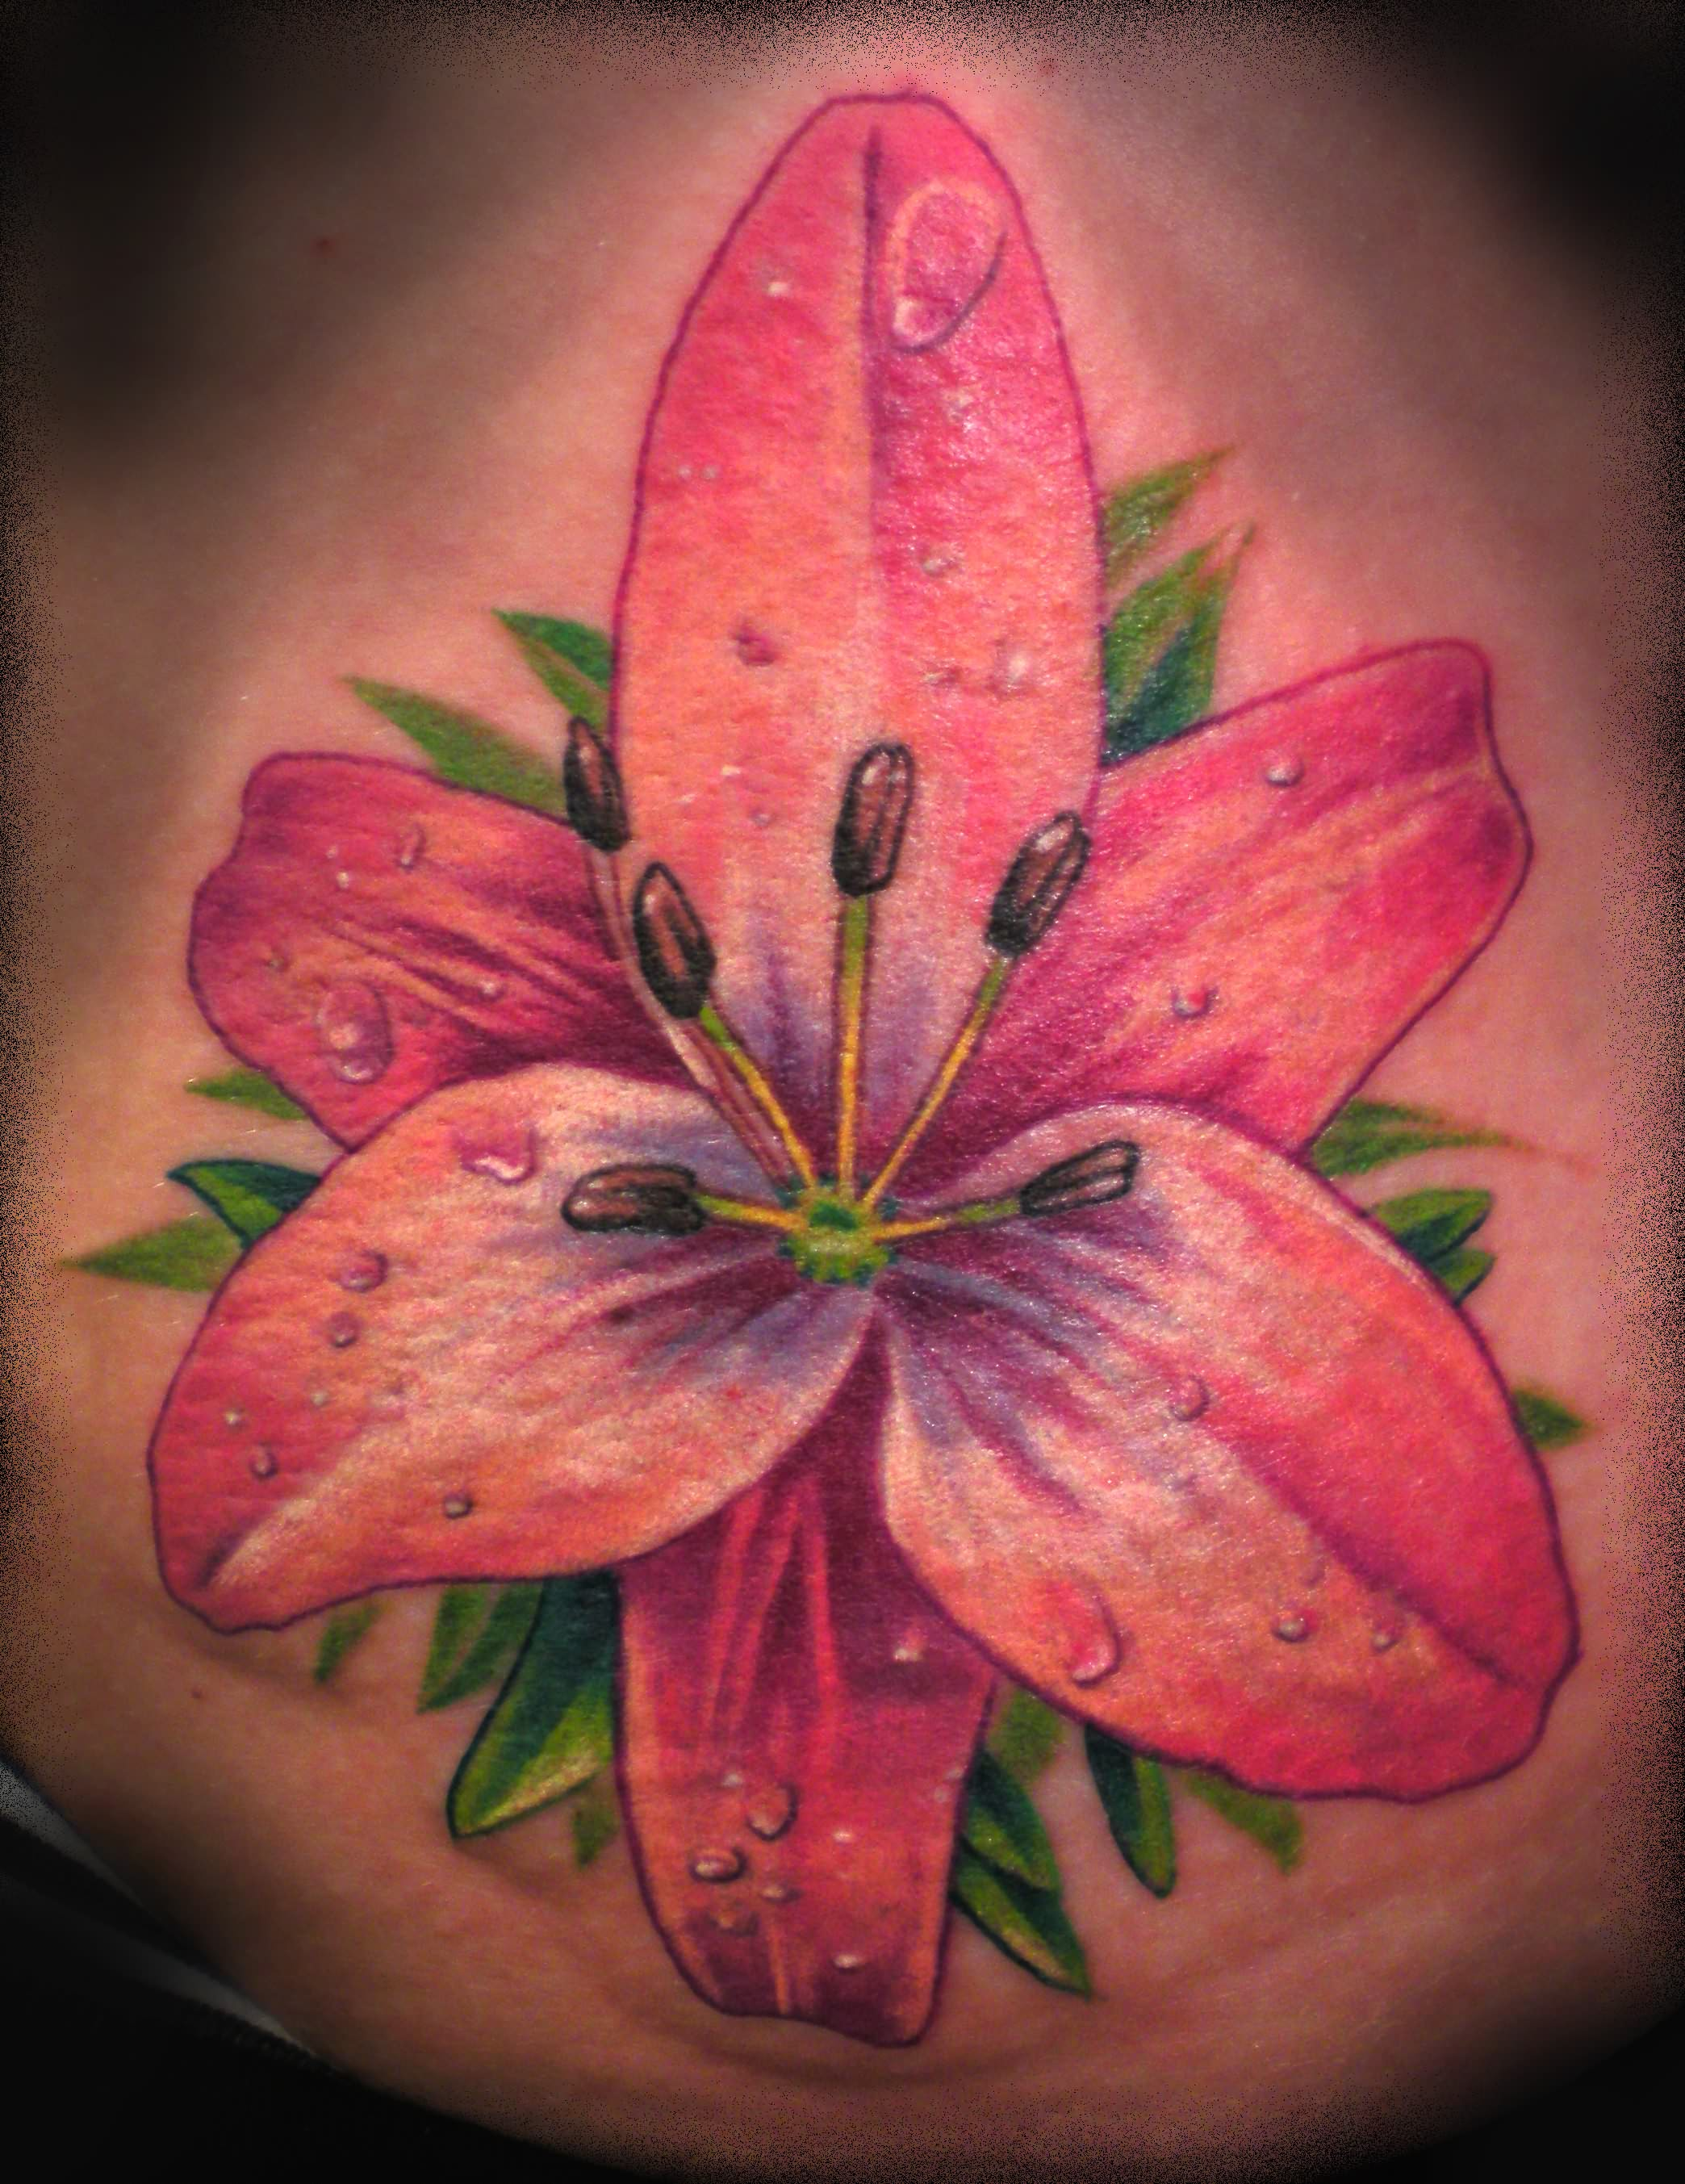 15 lily tattoo images pictures and ideas awesome pink lily flower tattoo design izmirmasajfo